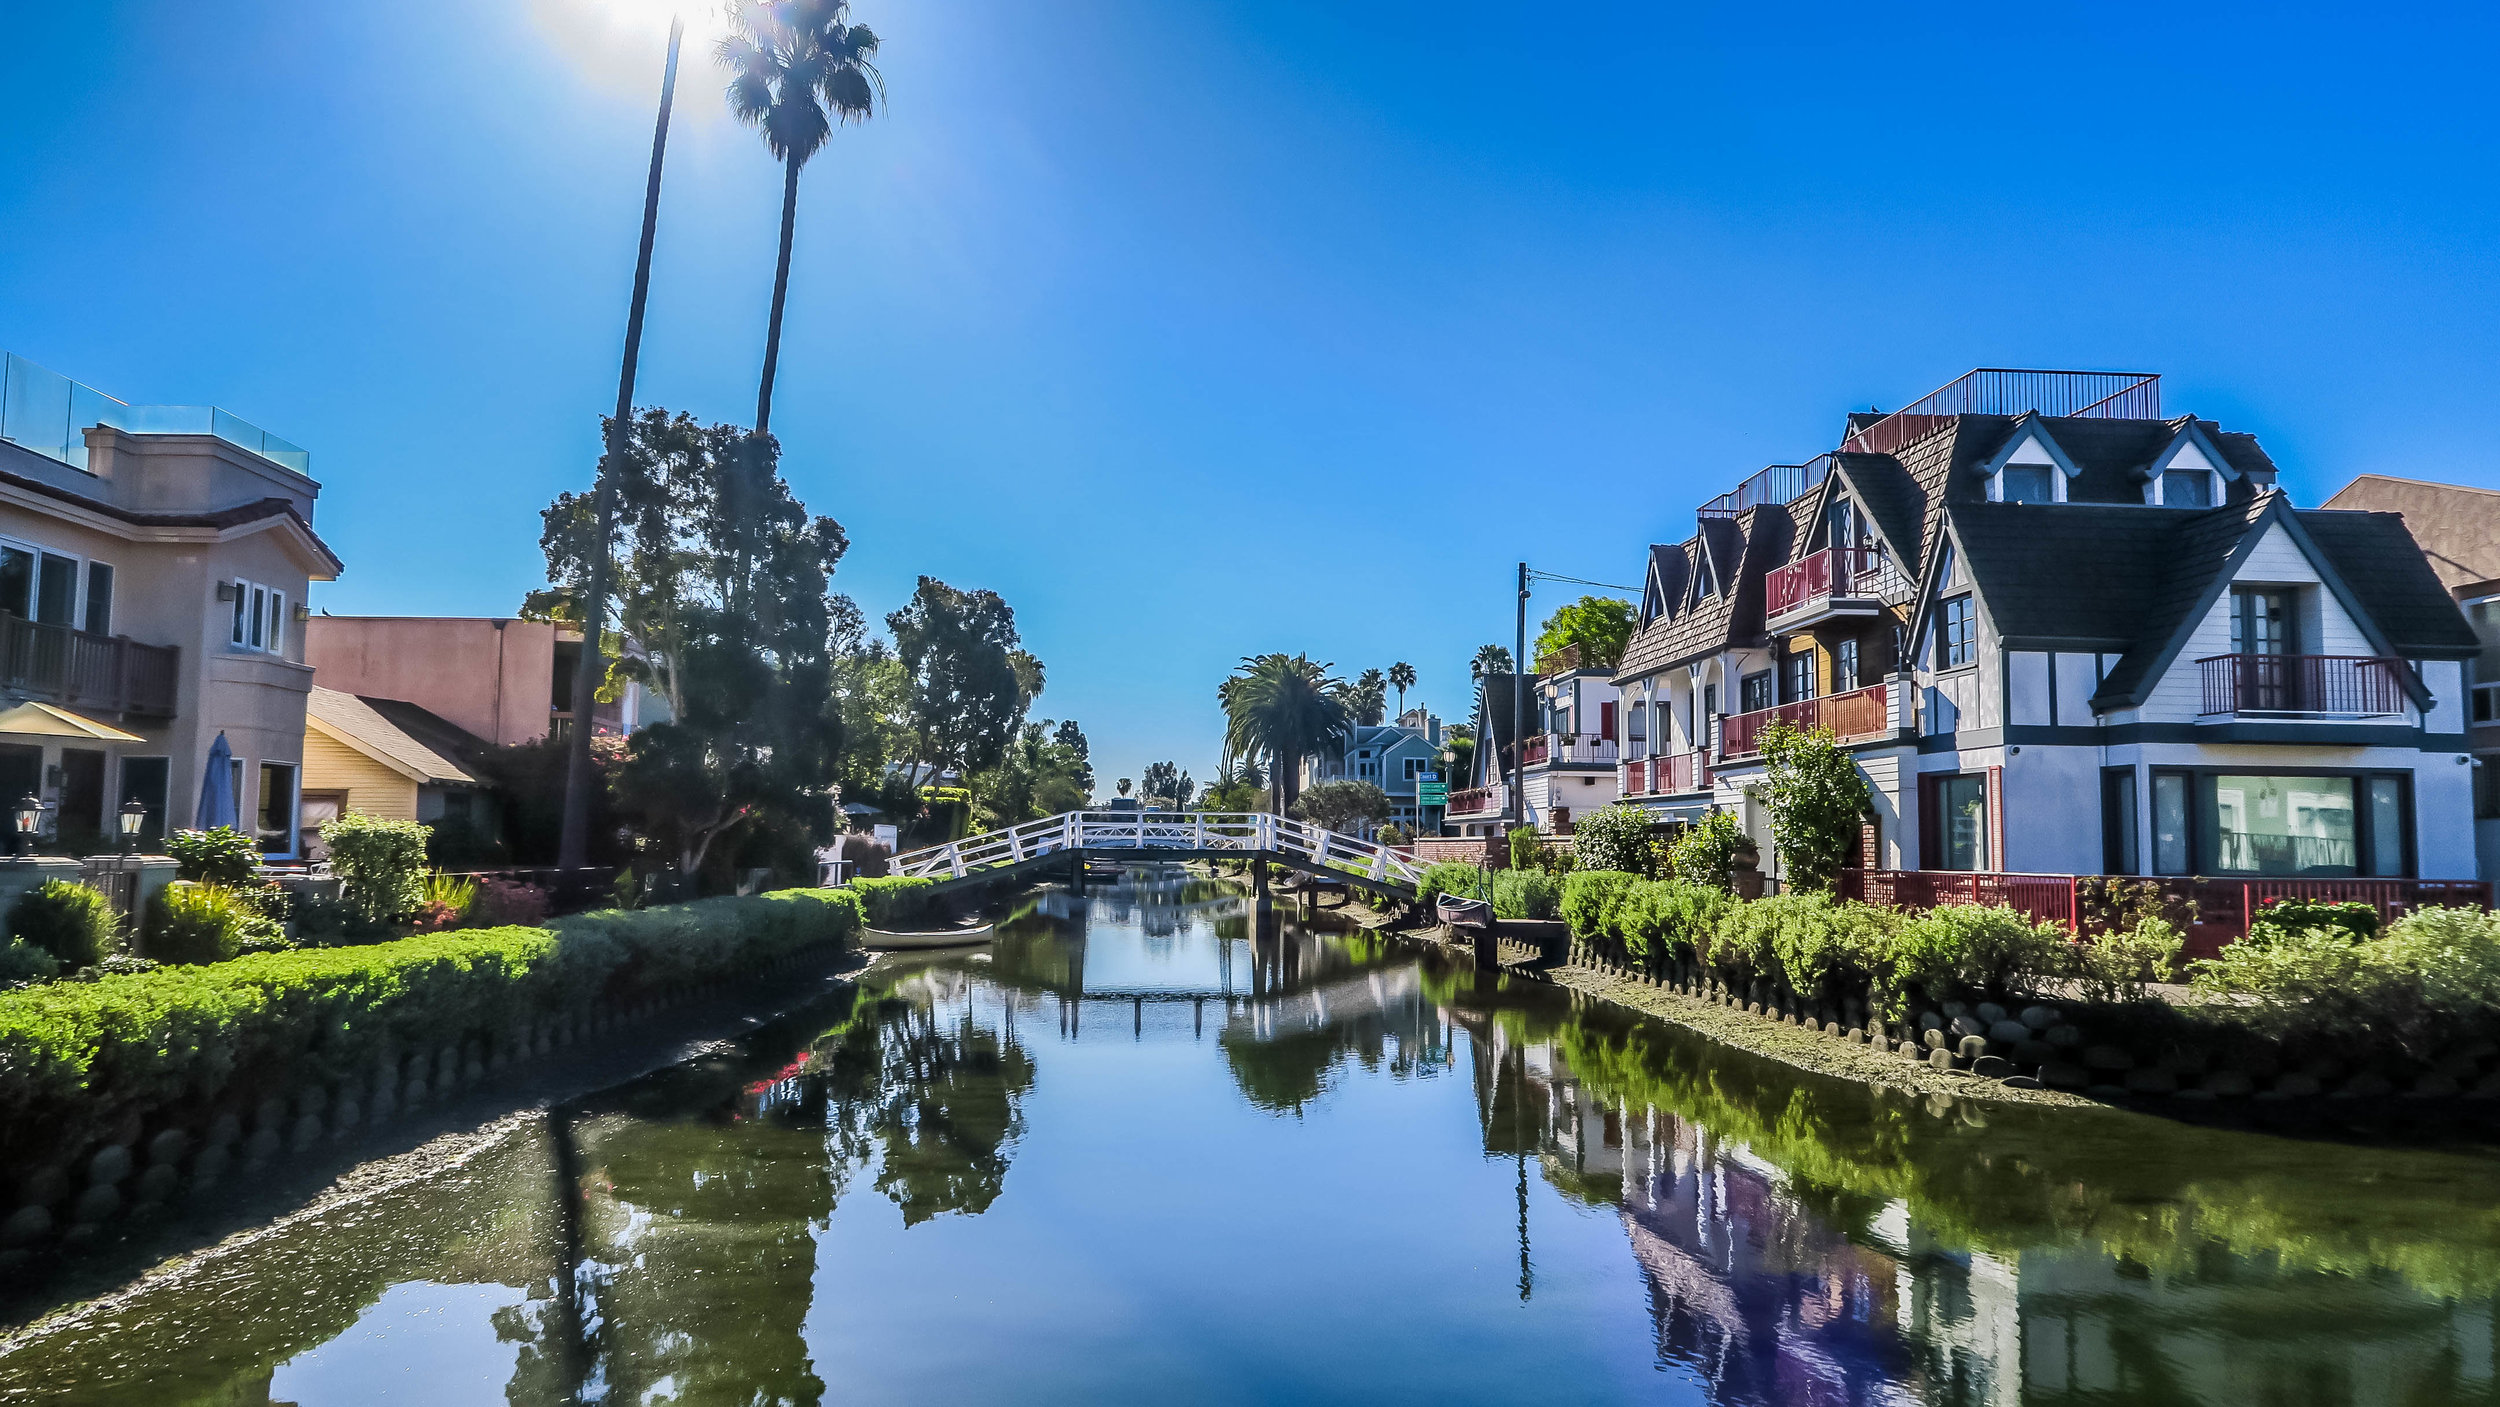 Reflections on the Venice Canals